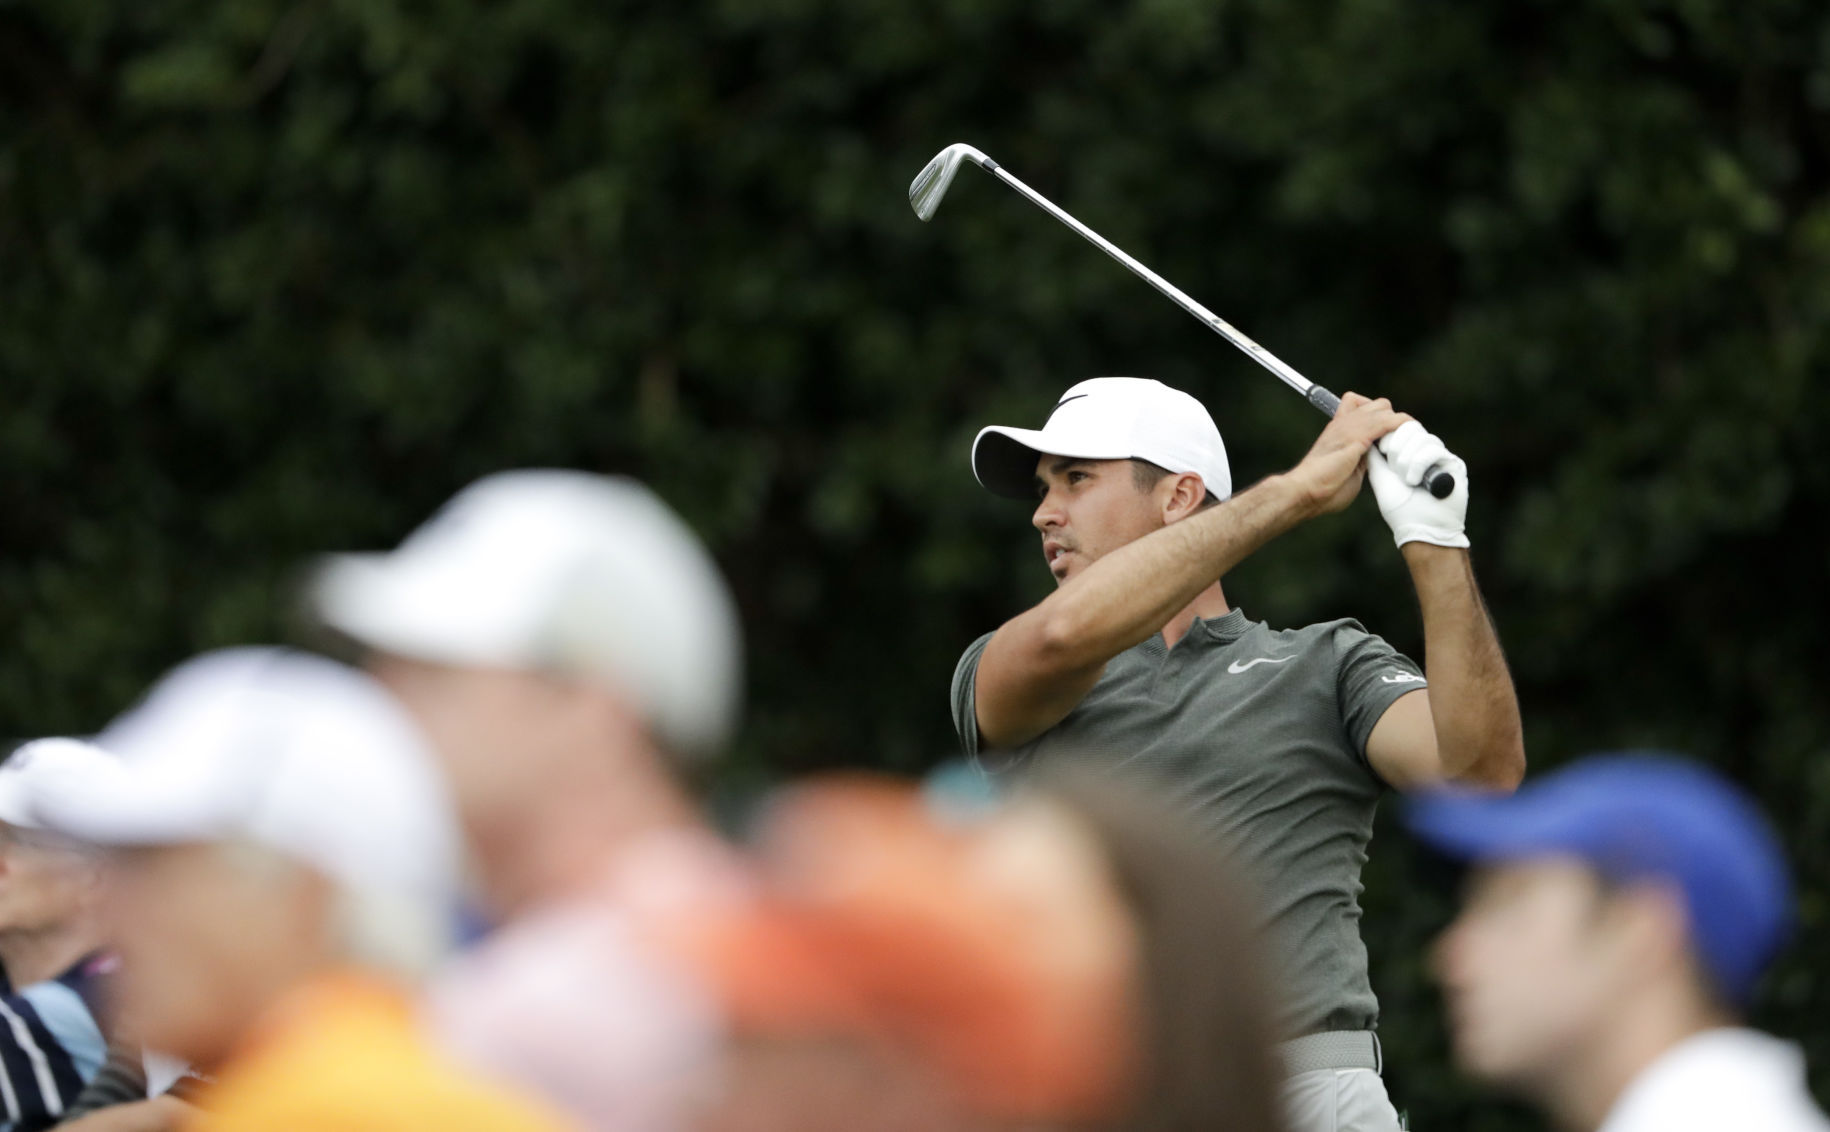 Rod Pampling hits bad  tee shot, becomes hero at PGA Championship